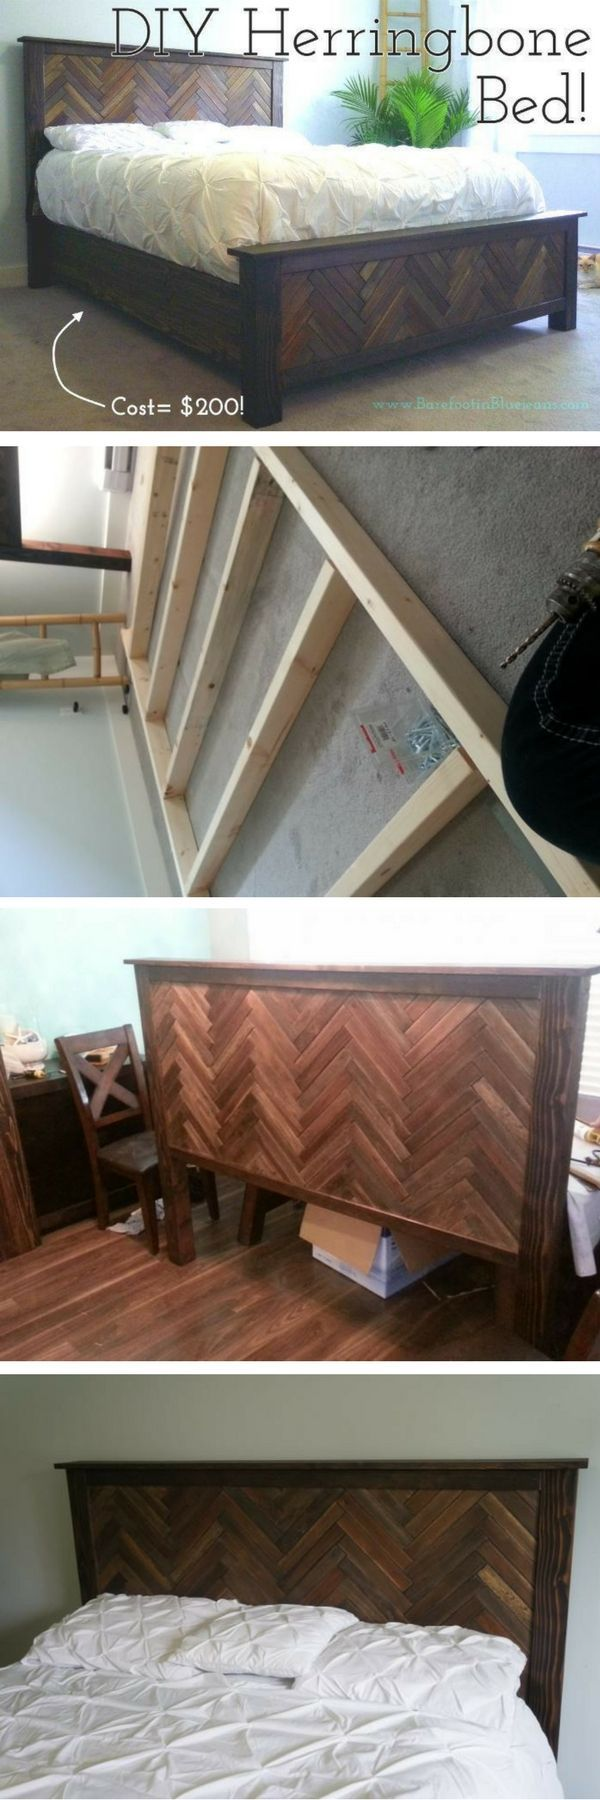 Fine woodworking furniture herringbone bed frames and fine